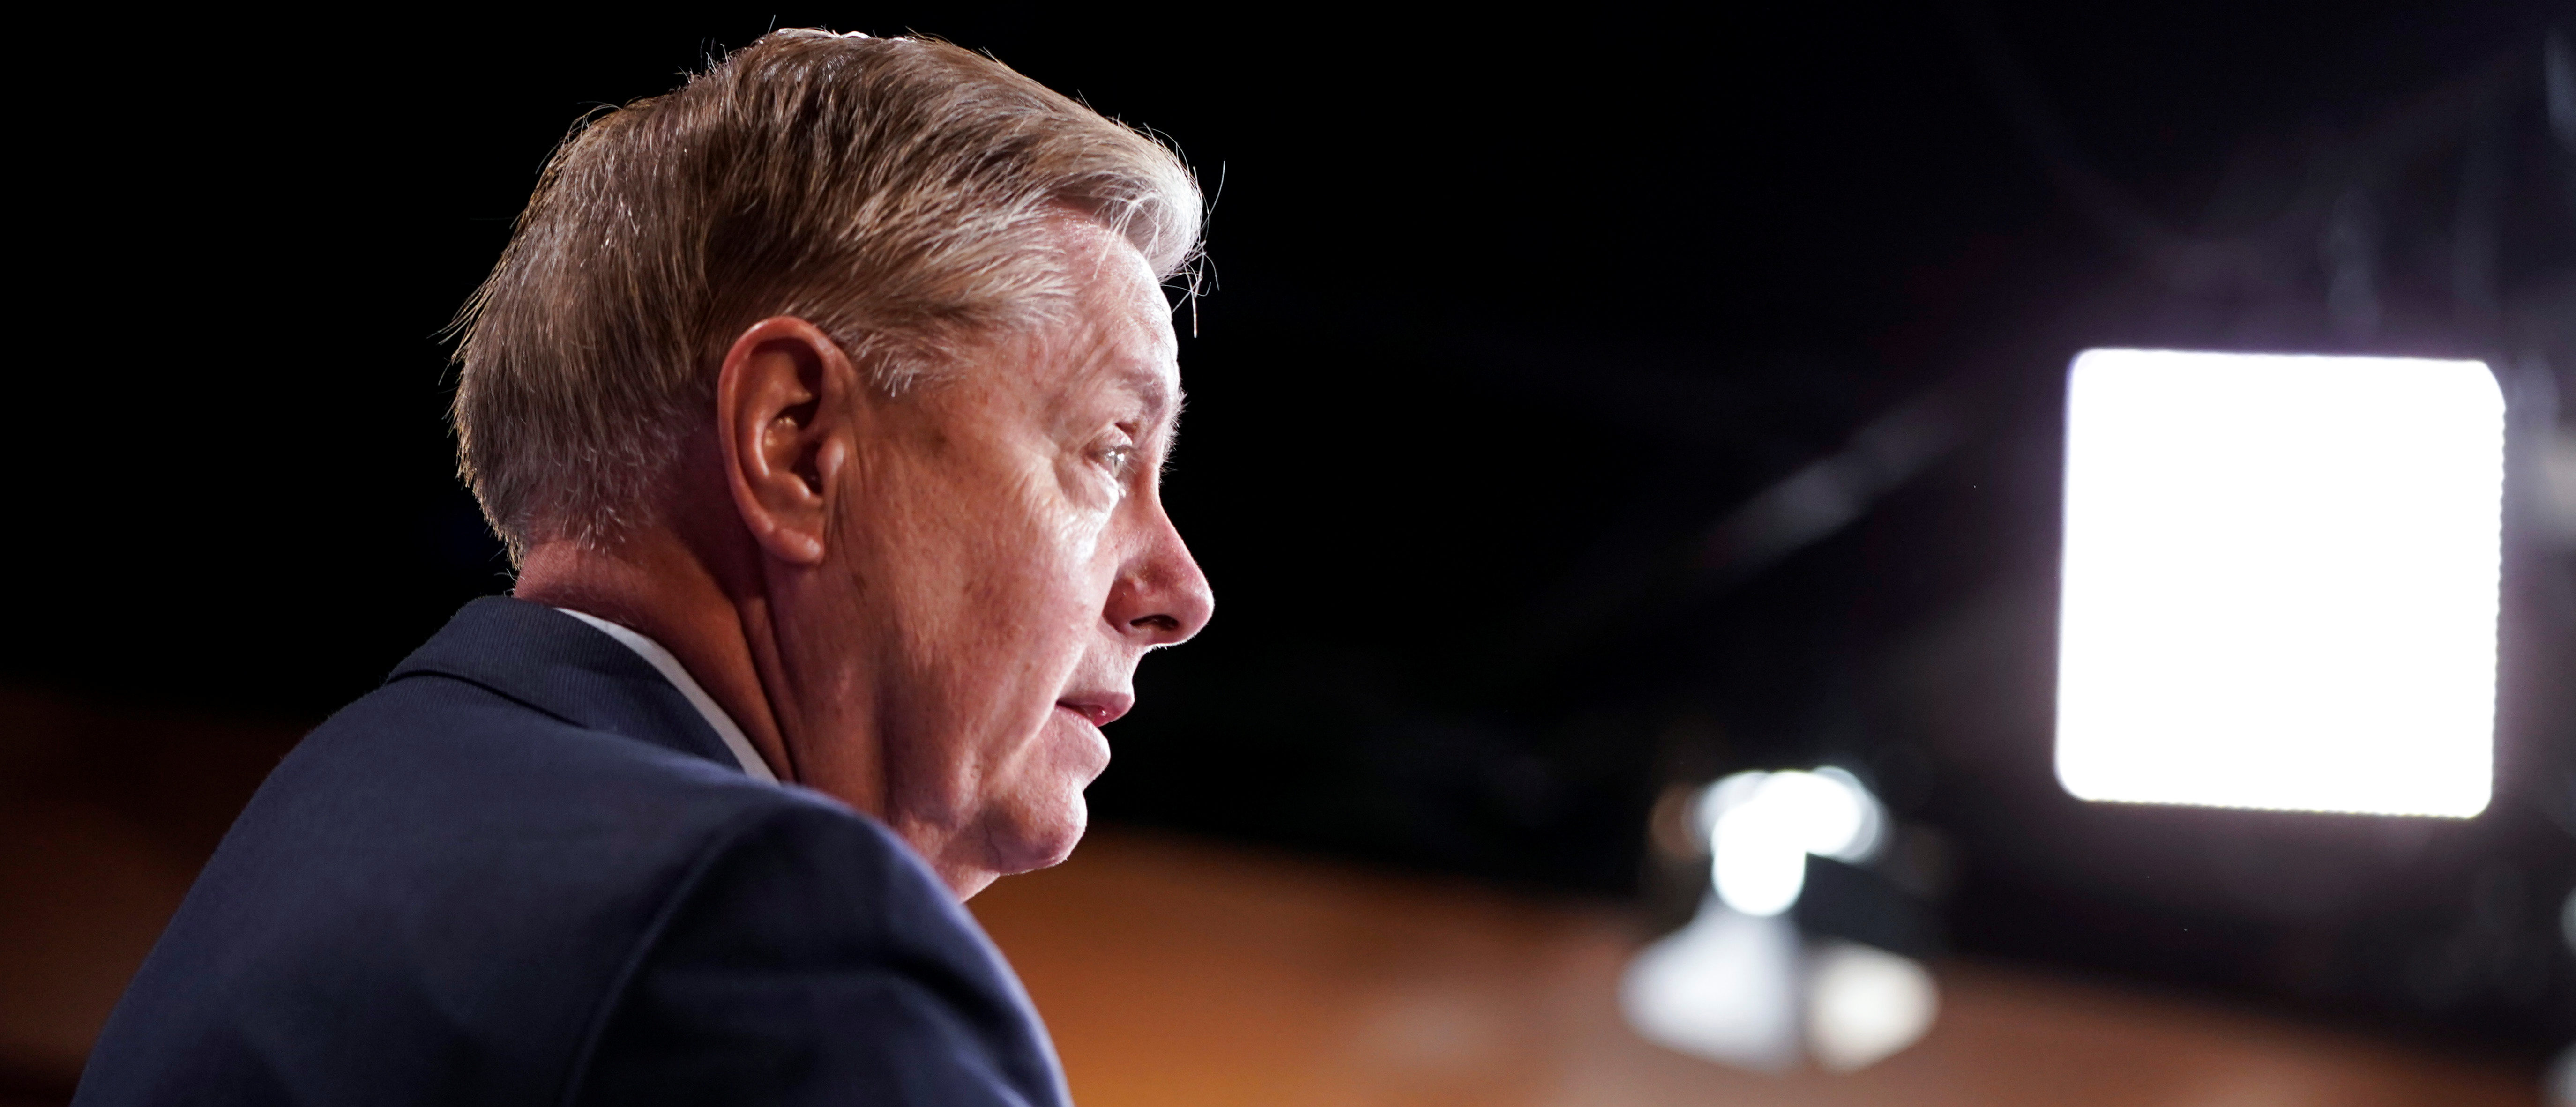 Chairman of the Senate Judiciary Committee Lindsey Graham (R-SC) speaks to the media on Capitol Hill in Washington.